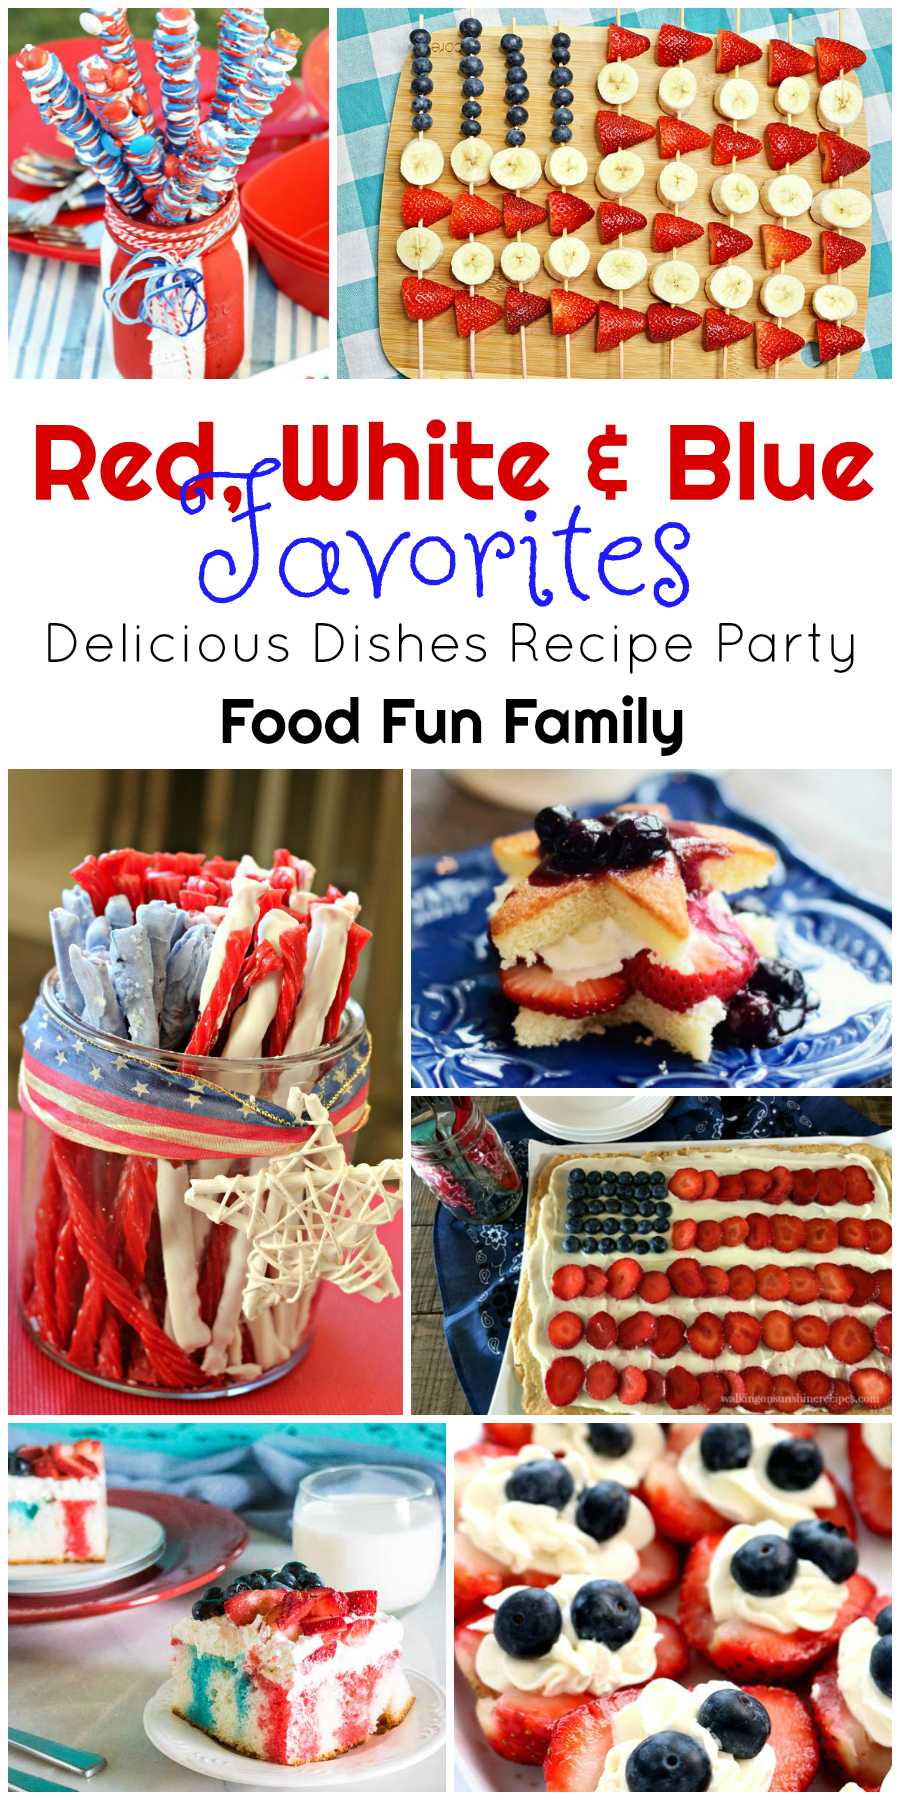 Red, White & Blue Favorites - a recipe collection for Memorial Day and 4th of July from Food Fun Family